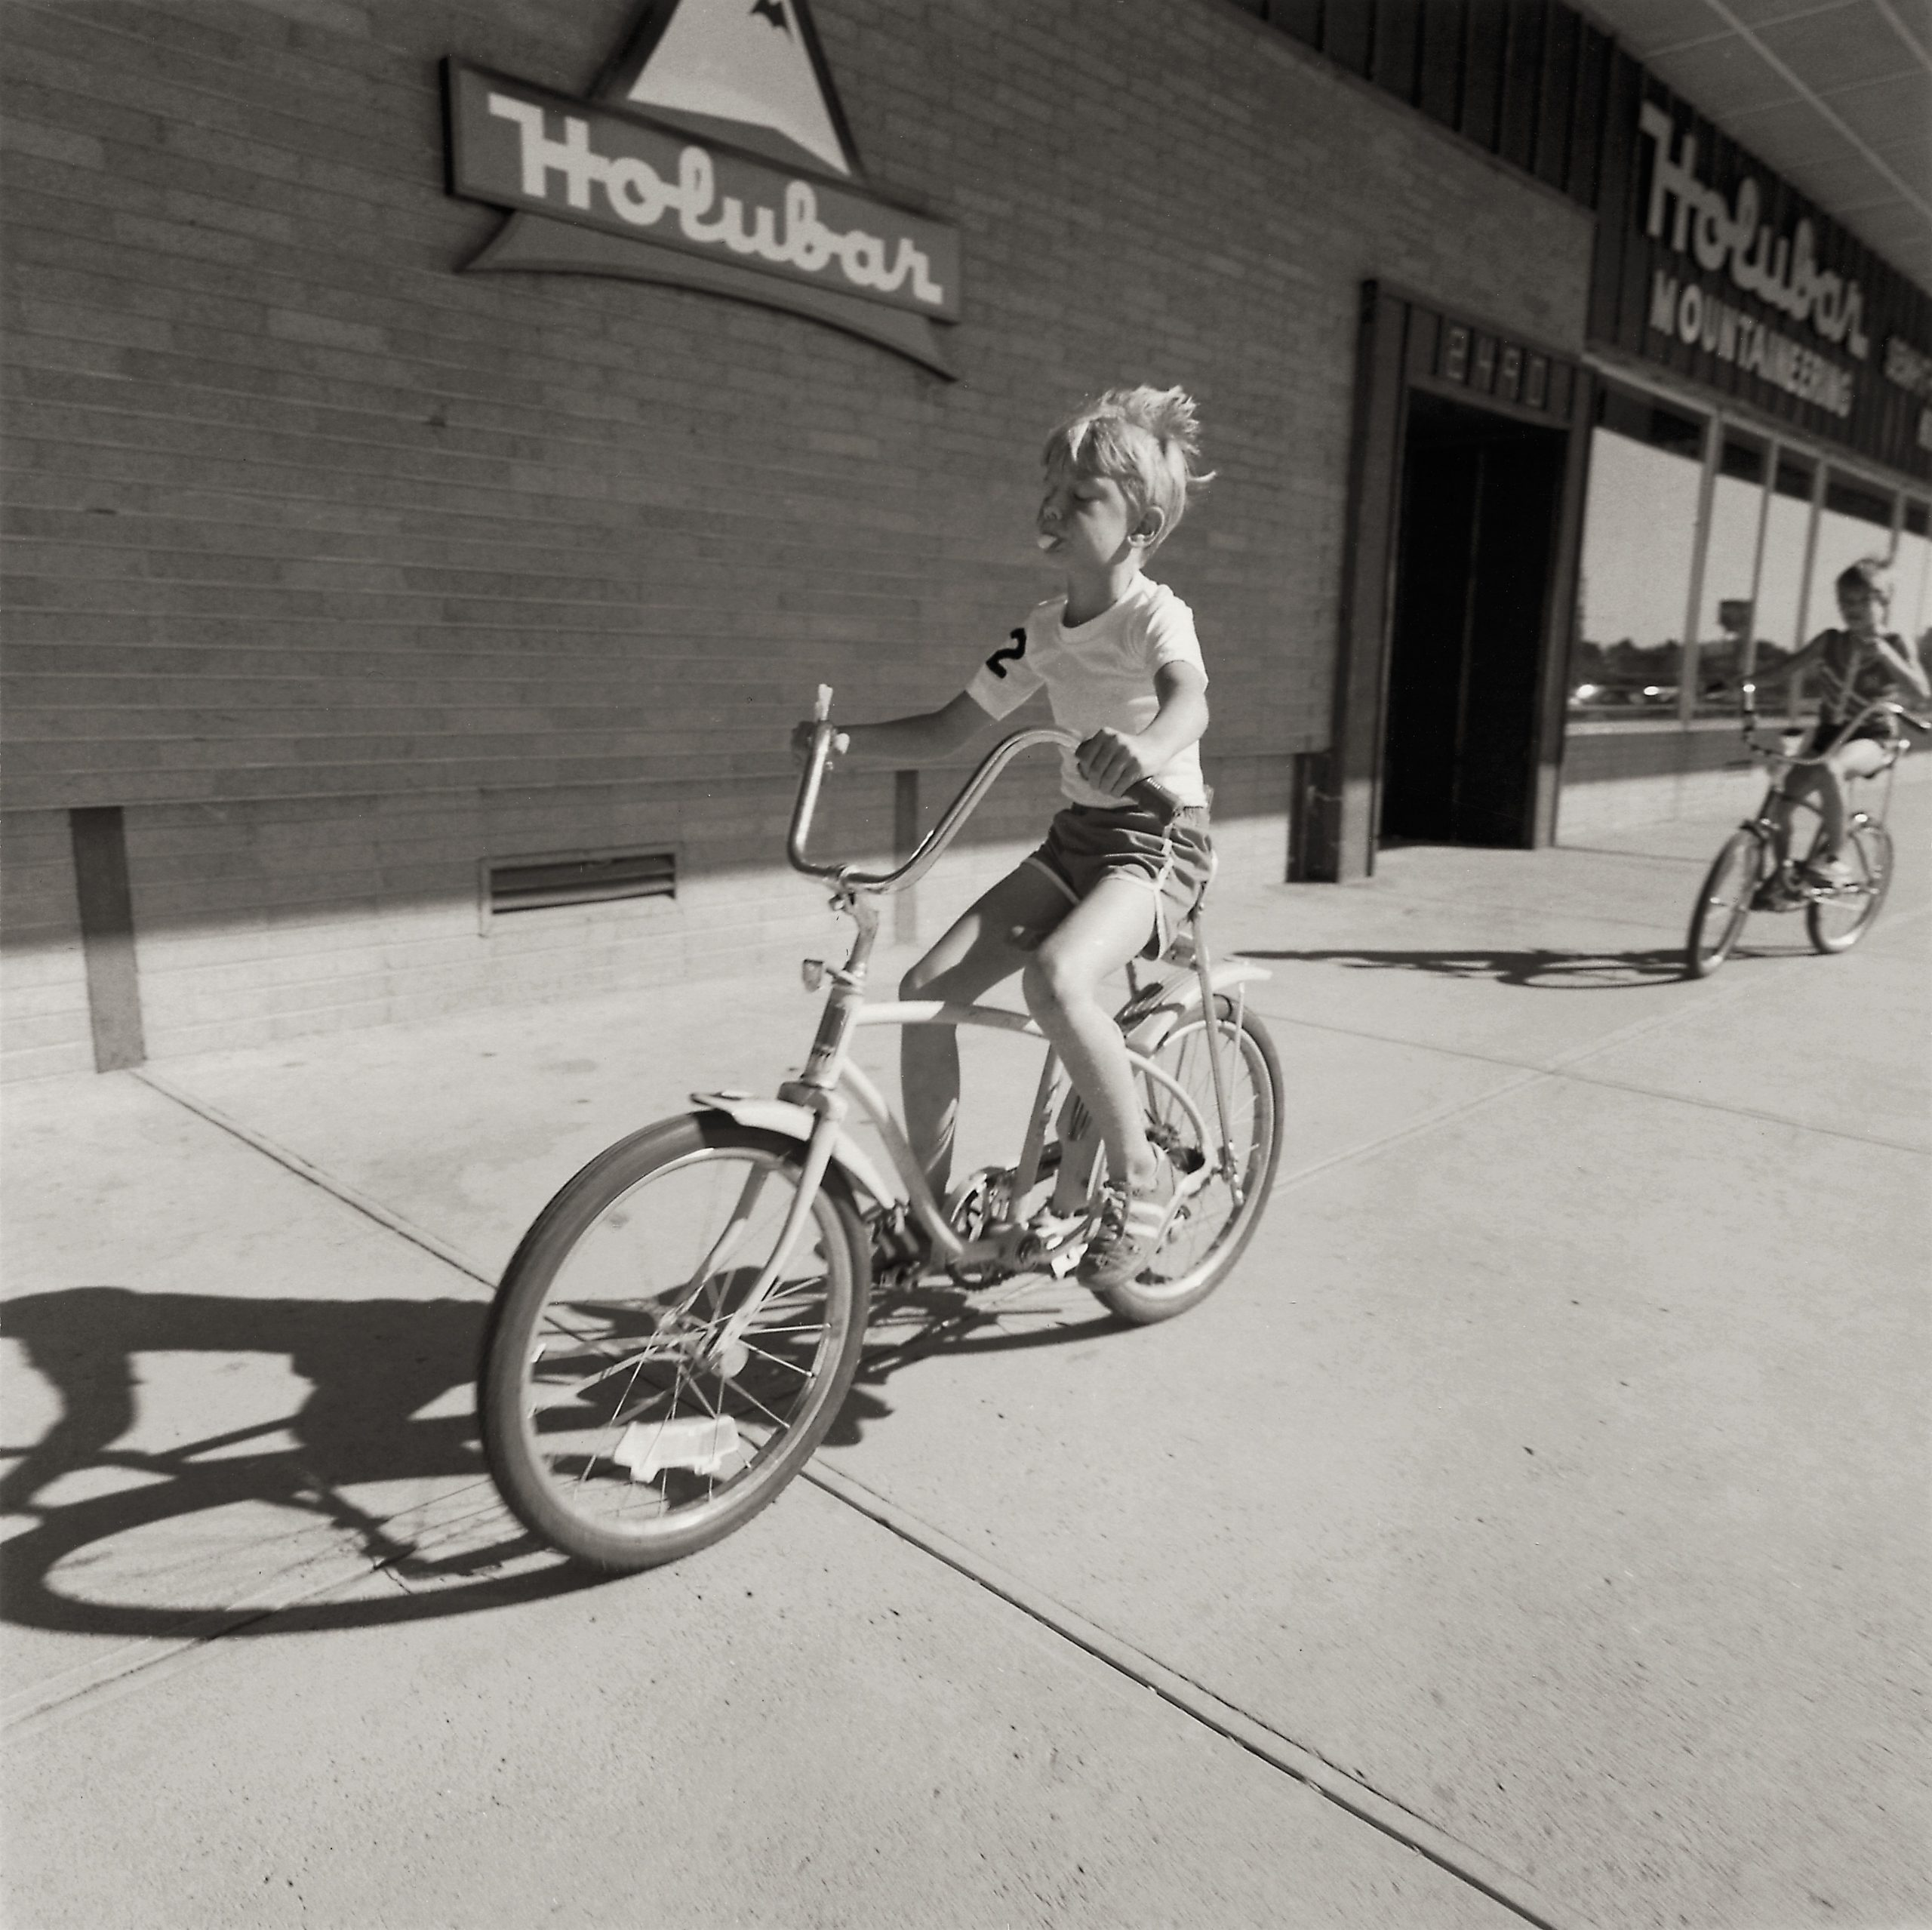 Untitled, Our Lives and Our Children, Colorado, 1979-1982